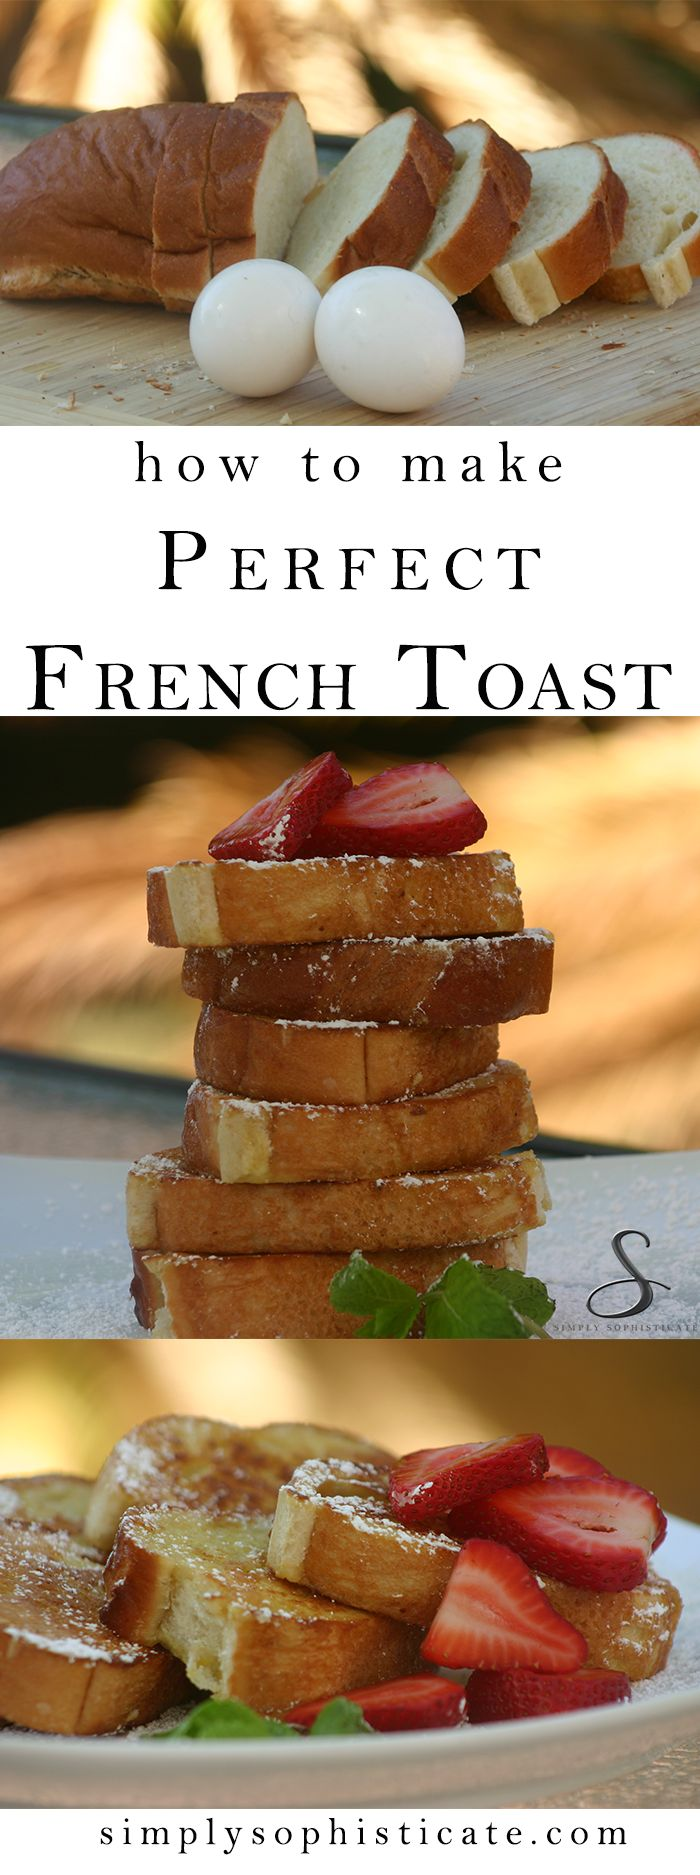 How To Make Perfect French Toast